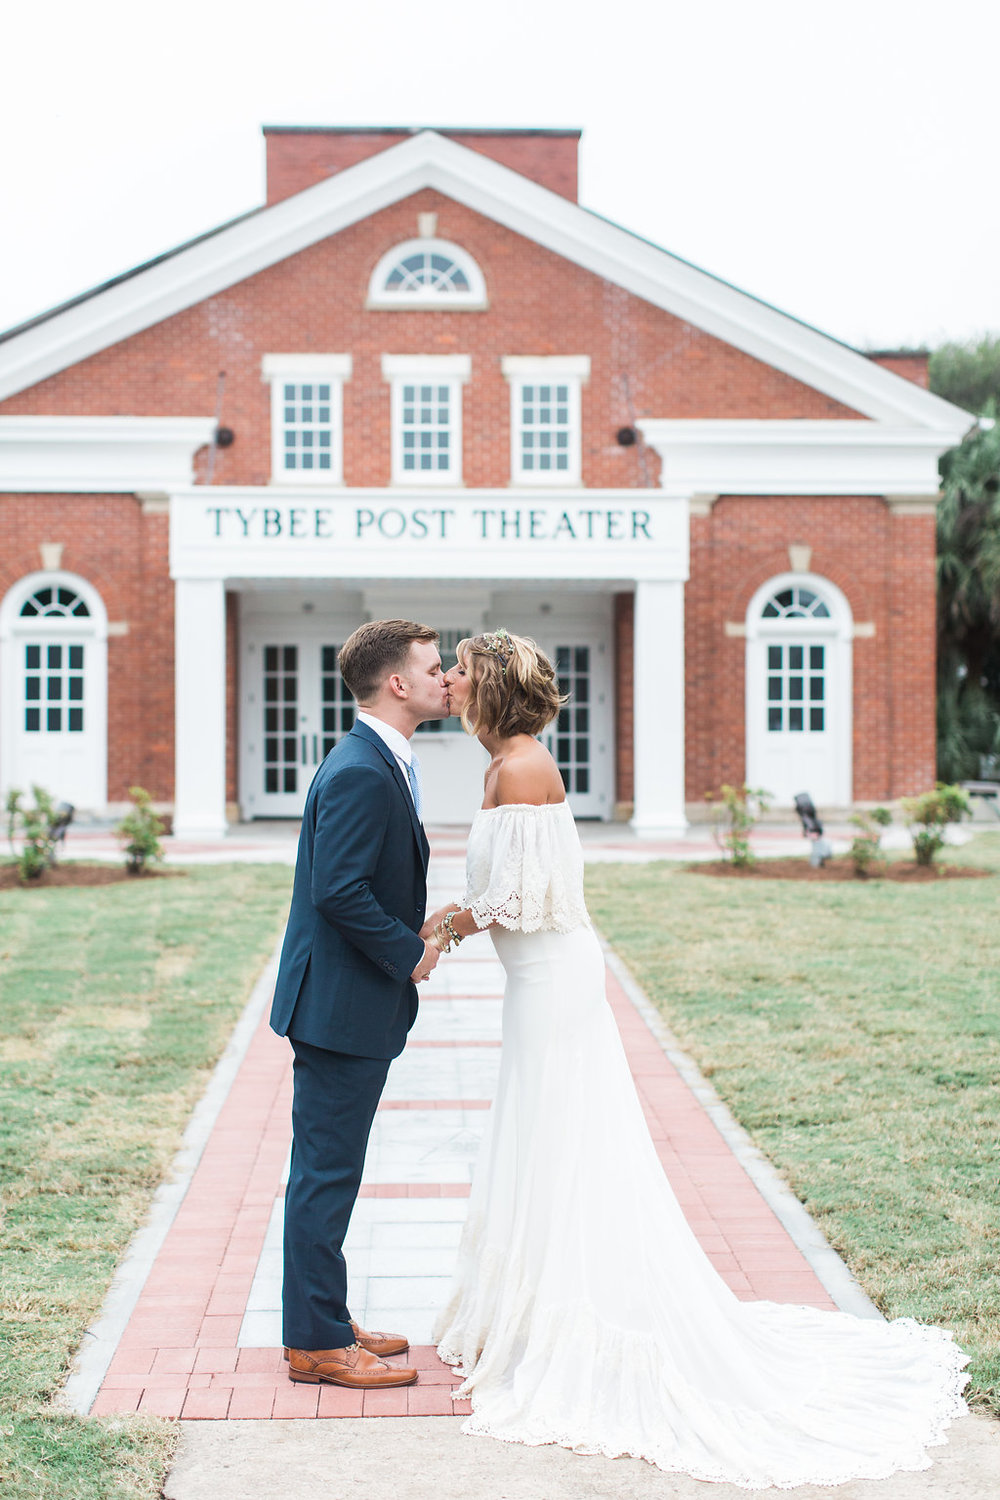 stacey-and-tj-wedding-apartment-b-photography-ivory-and-beau-bridal-boutique-savannah-wedding-dresses-daughters-of-simone-lu-boho-bride-boho-wedding-savannah-boho-wedding-savannah-weddings-savannah-bridal-gowns-savannah-wedding-31.jpg